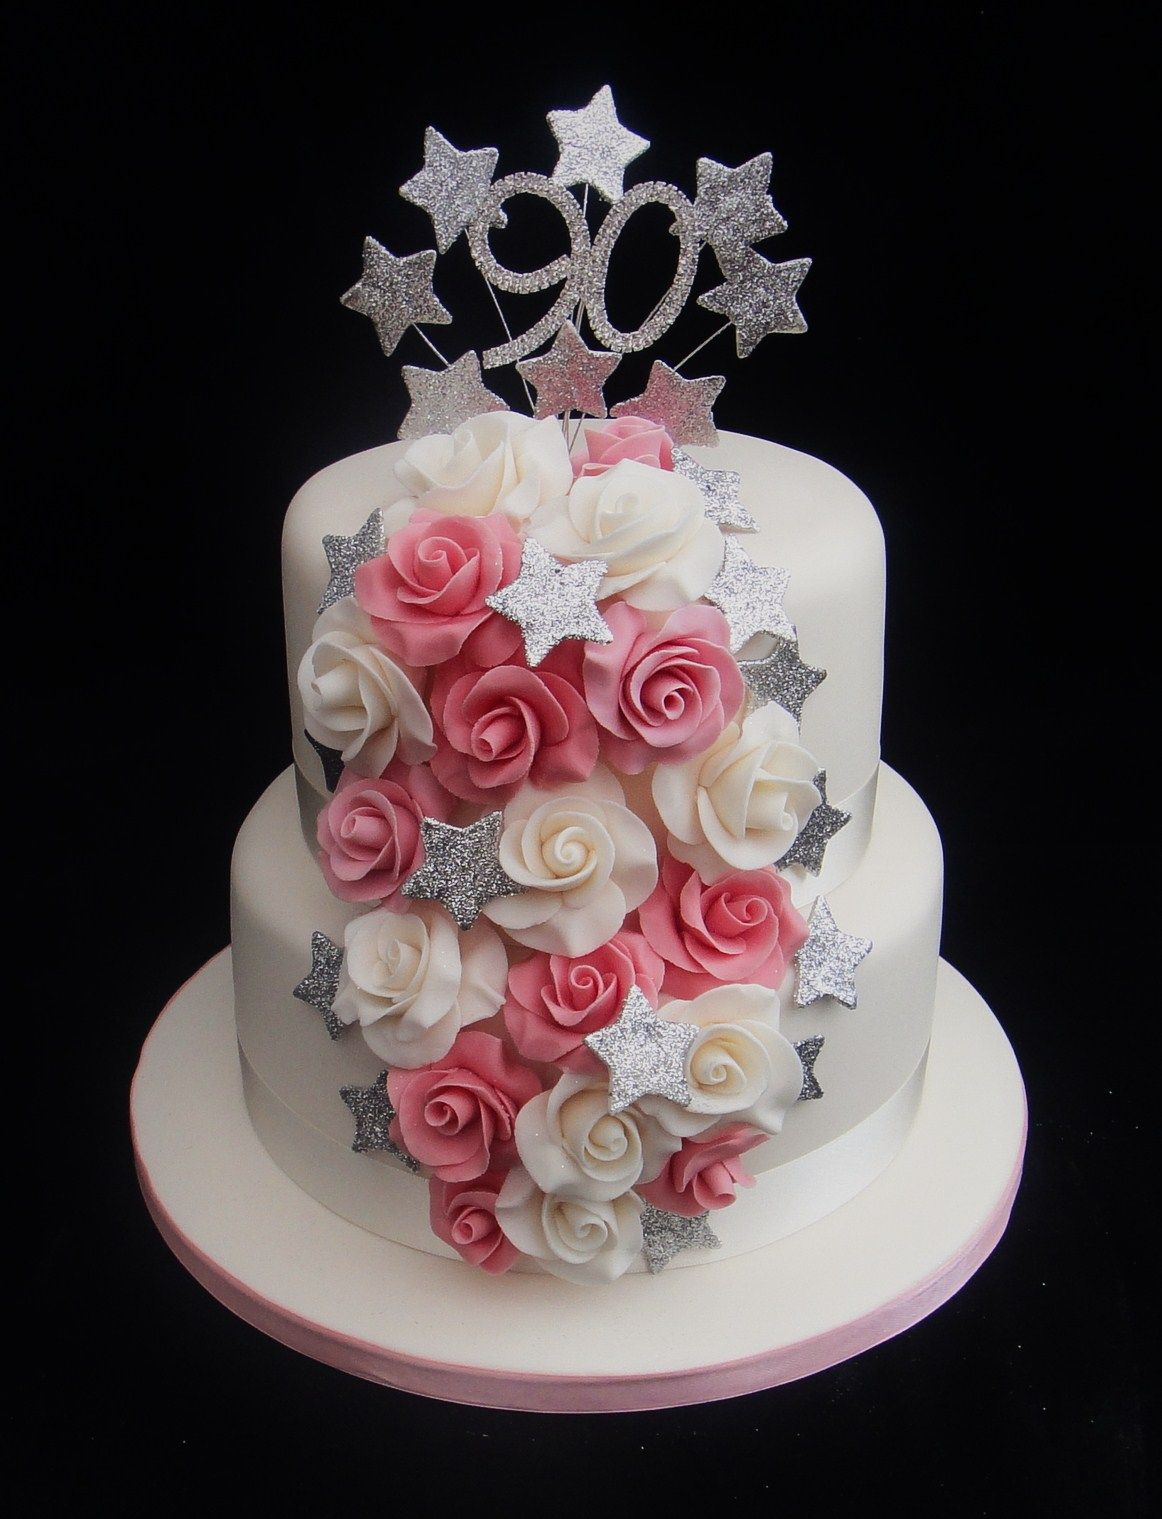 Cake Designs For 60th Birthday : Hand Moulded Roses Birthday Cake 07917815712 www ...